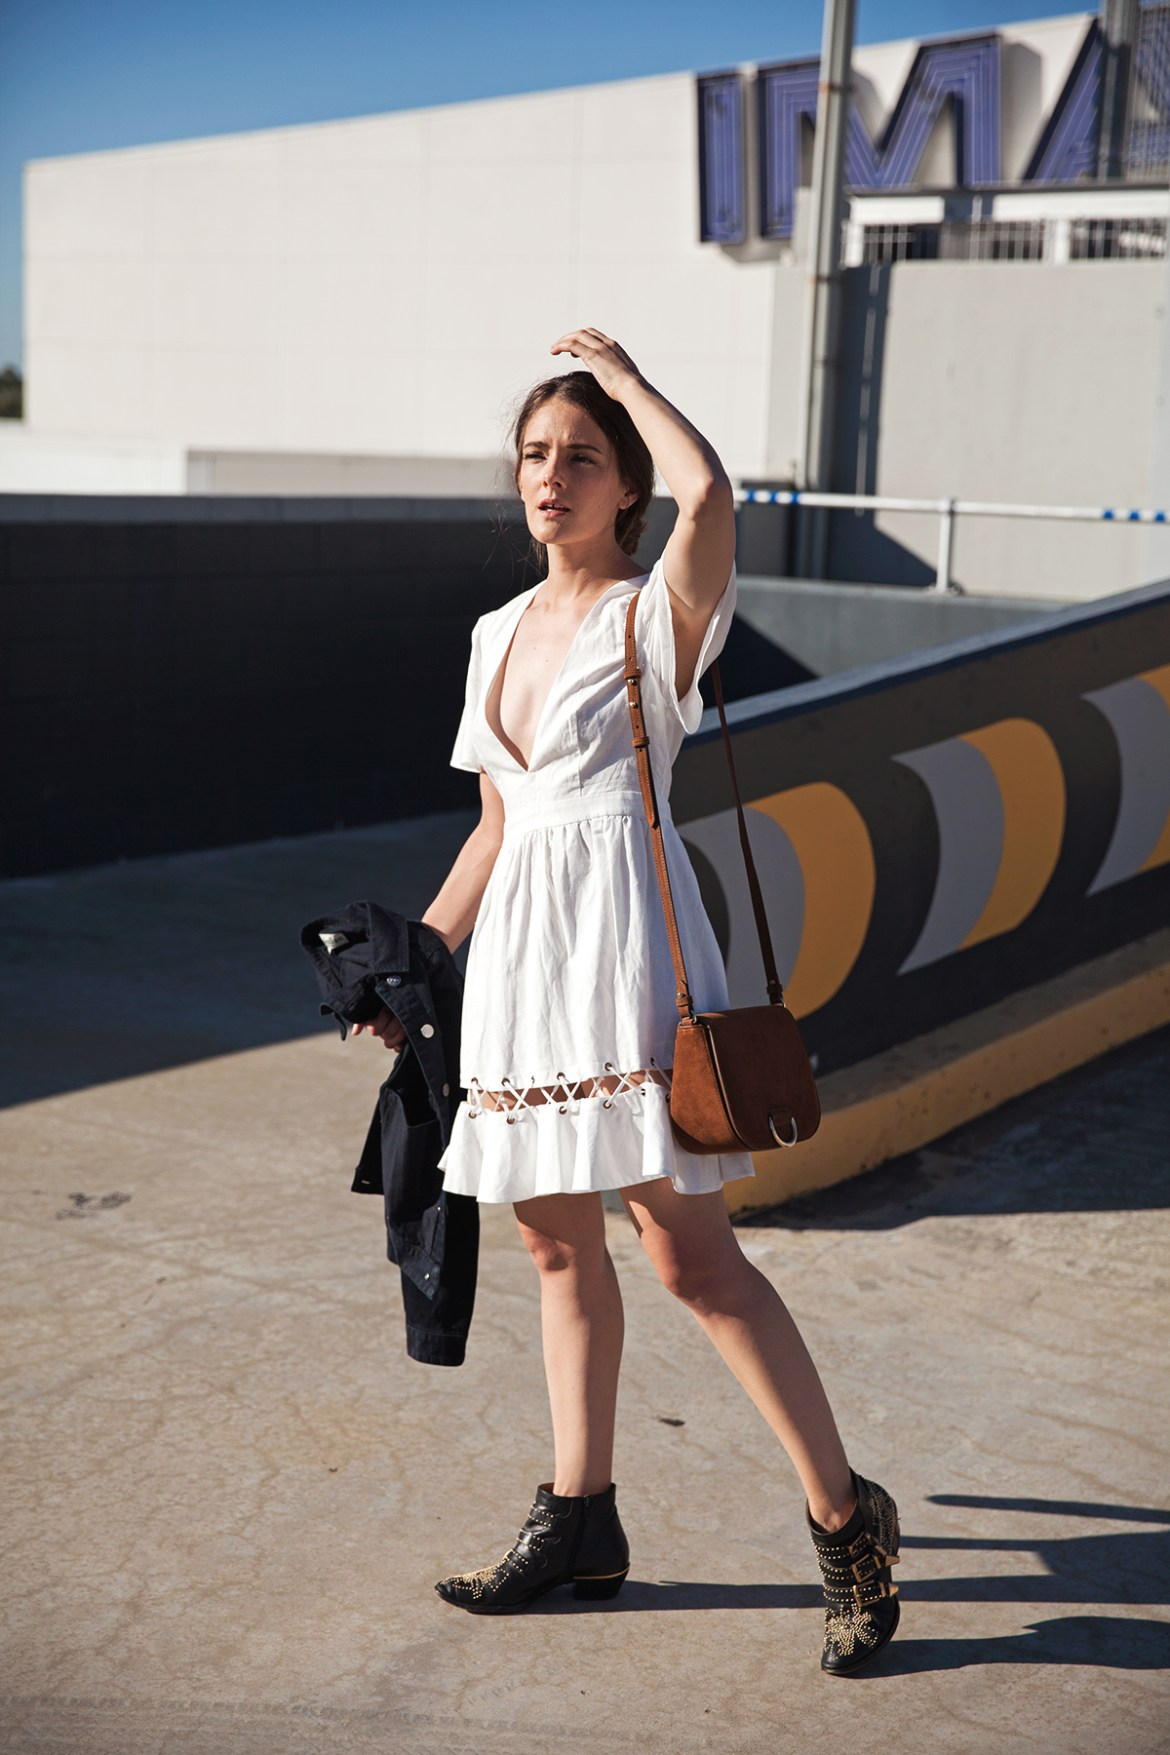 The white summer dress how to style, Inspiring Wit, Australian fashion blogger